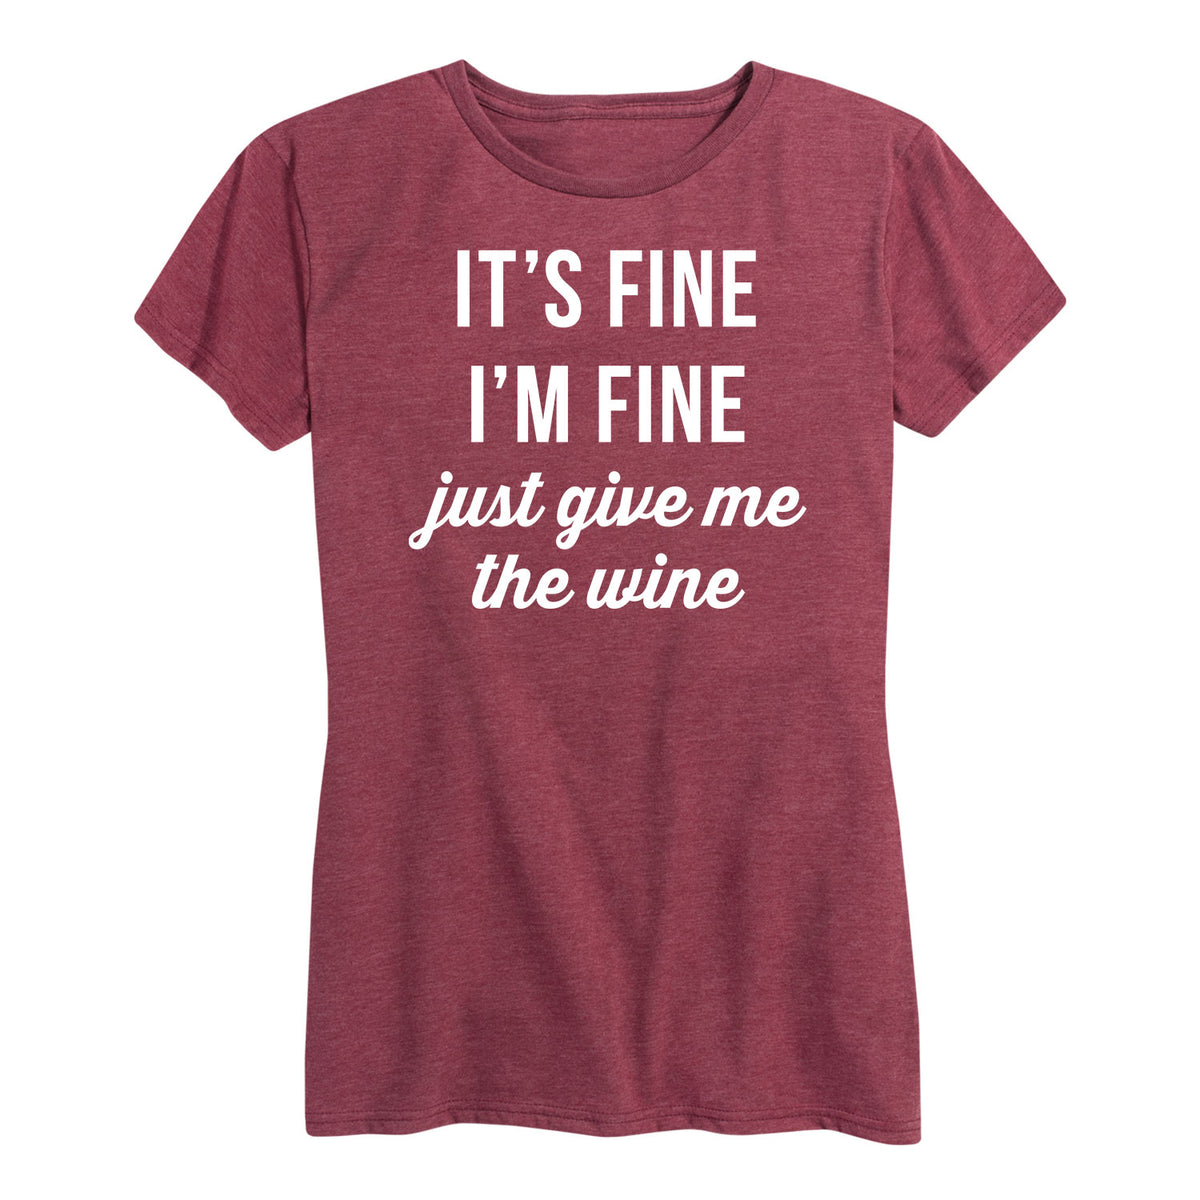 I'm Fine Just Give Me The Wine - Women's Short Sleeve T-Shirt